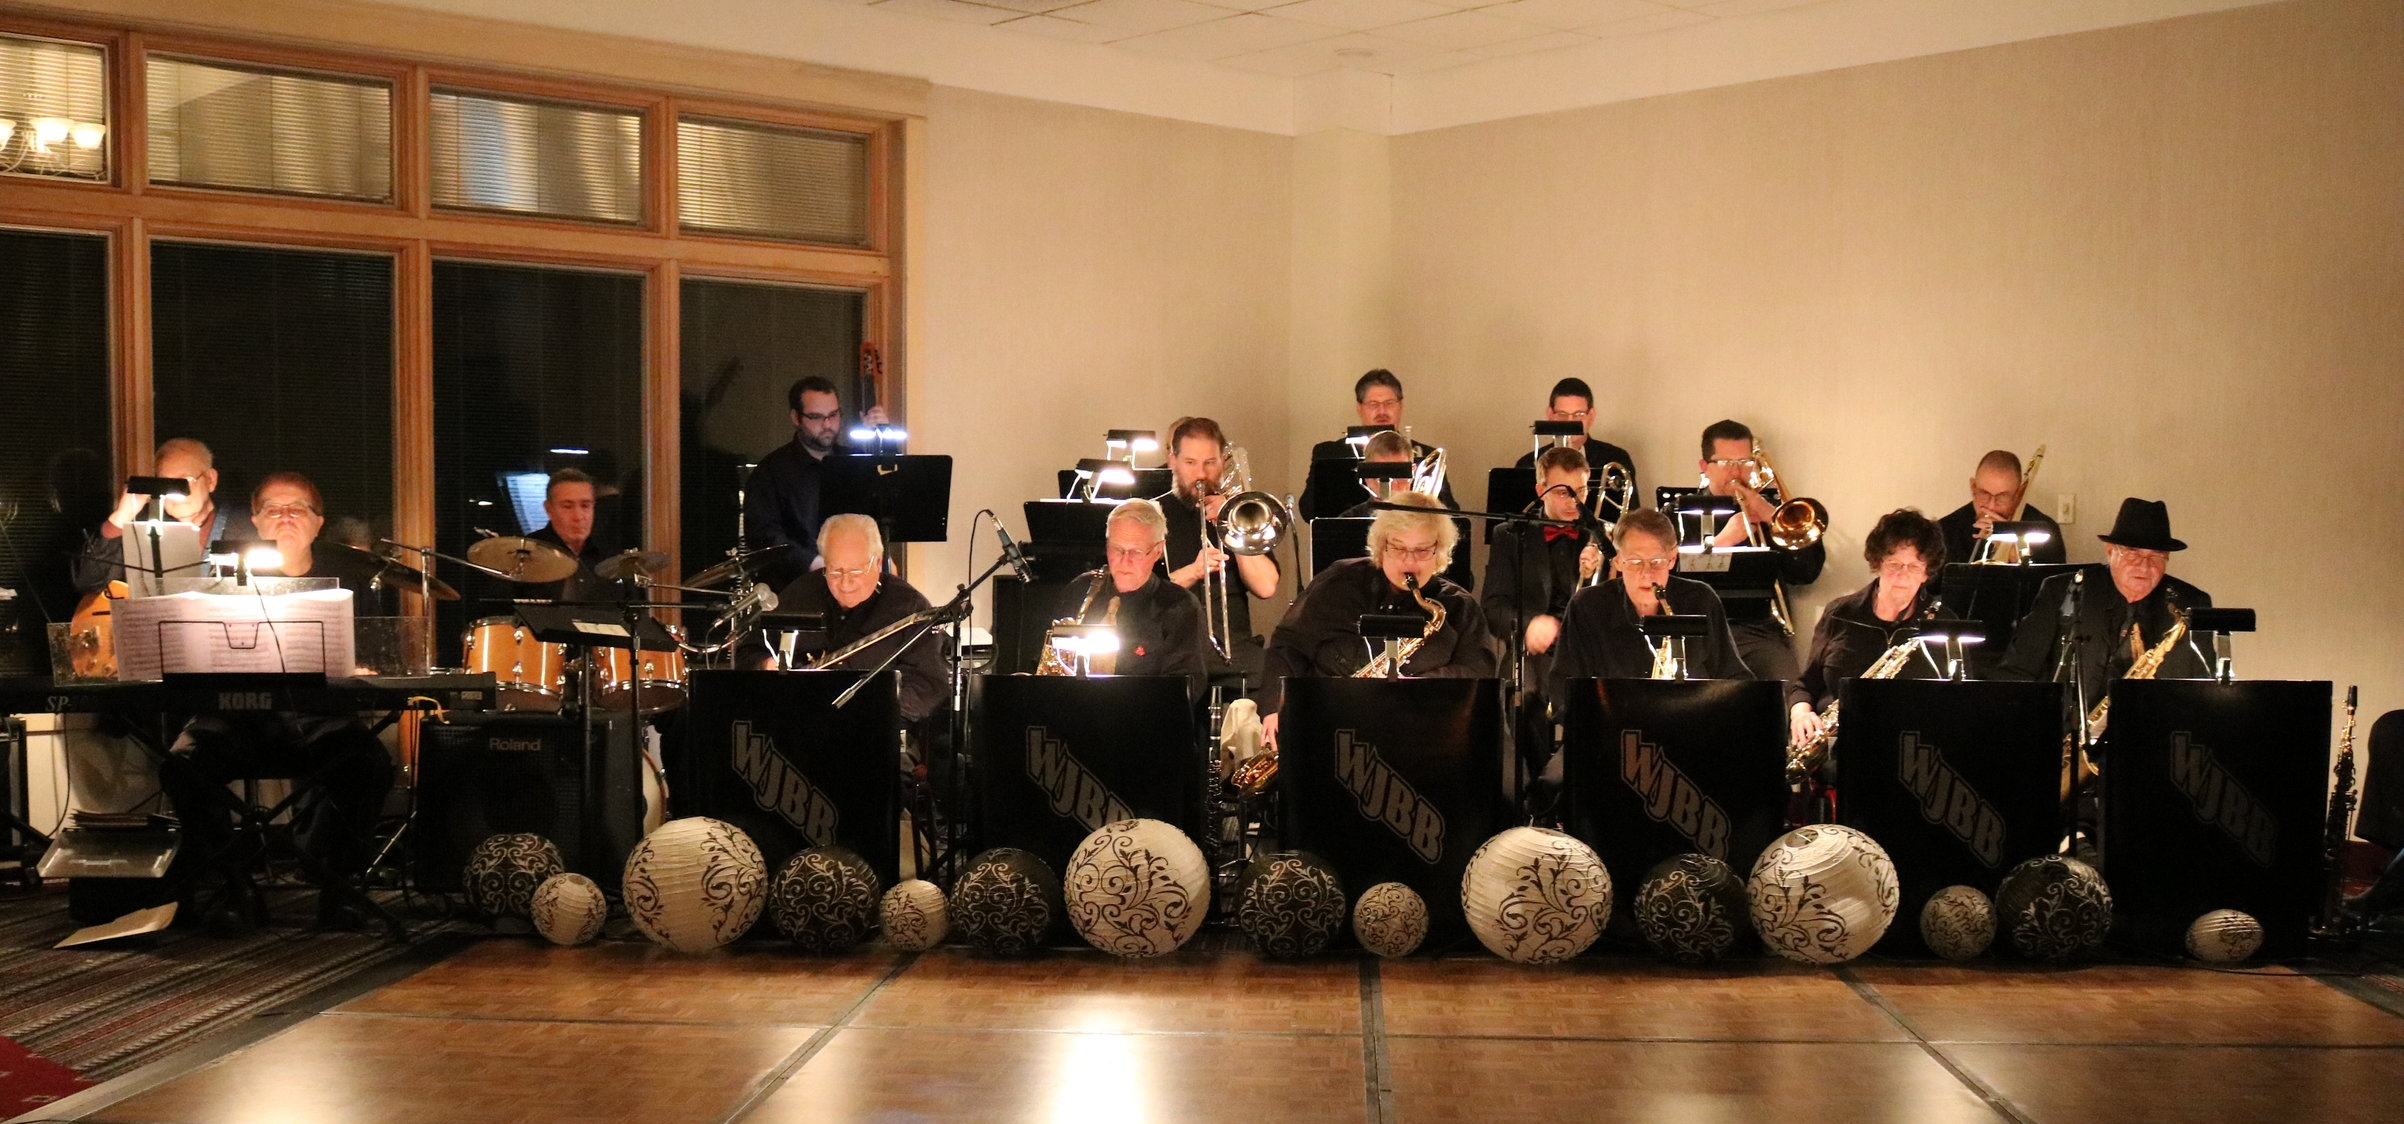 The Windjammers Big Band provided fantastic entertainment for drinking....